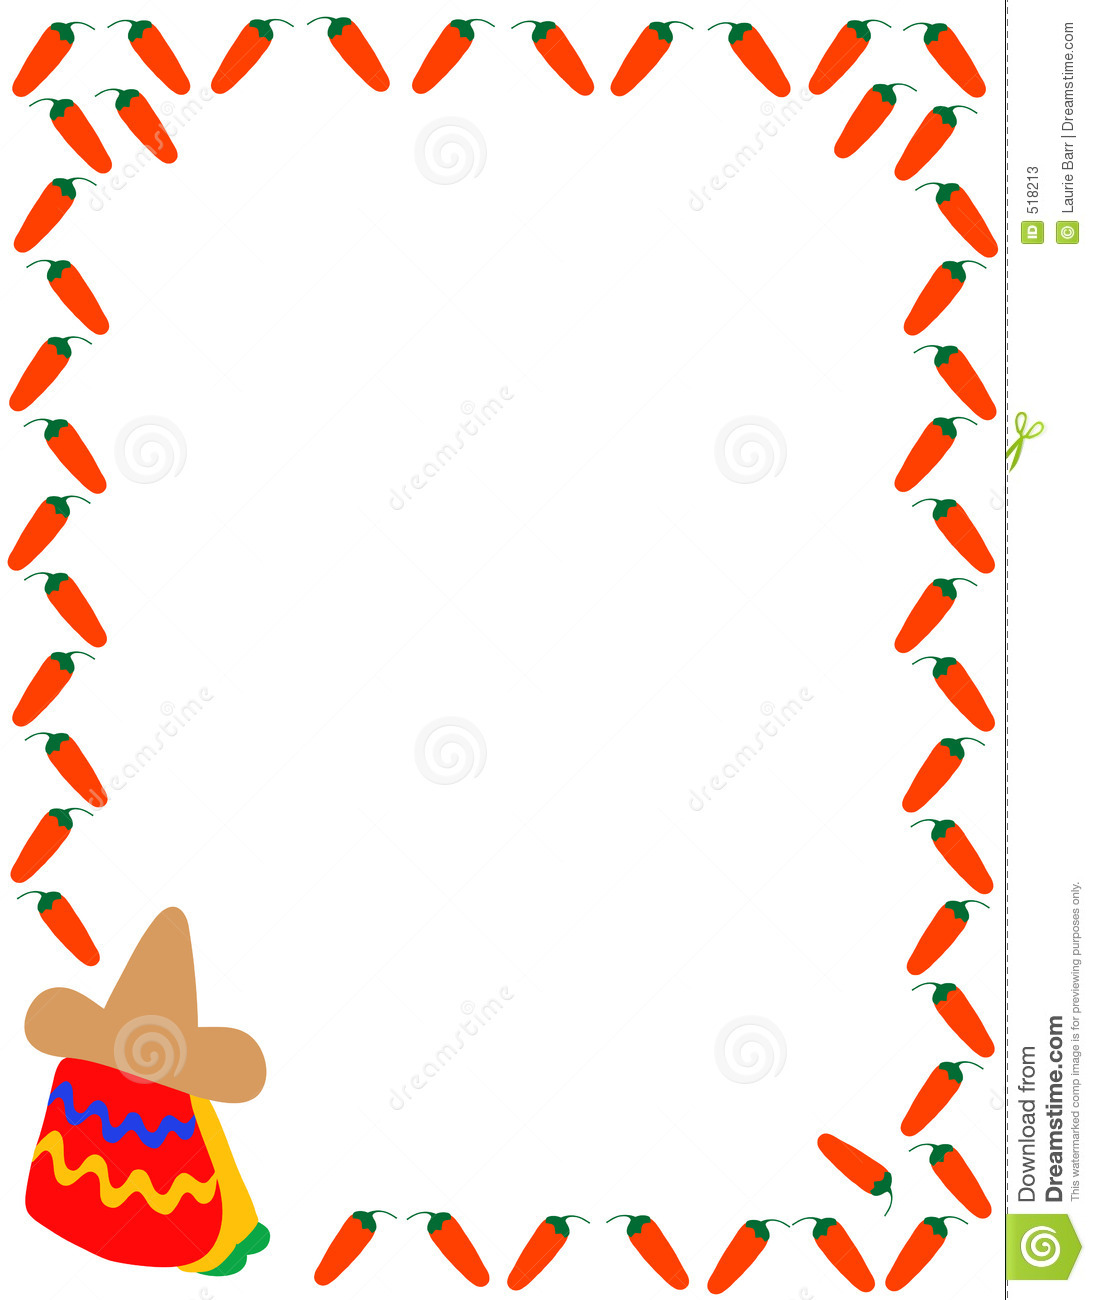 1095x1300 Clipart Of Food Cooking Borders And Banners